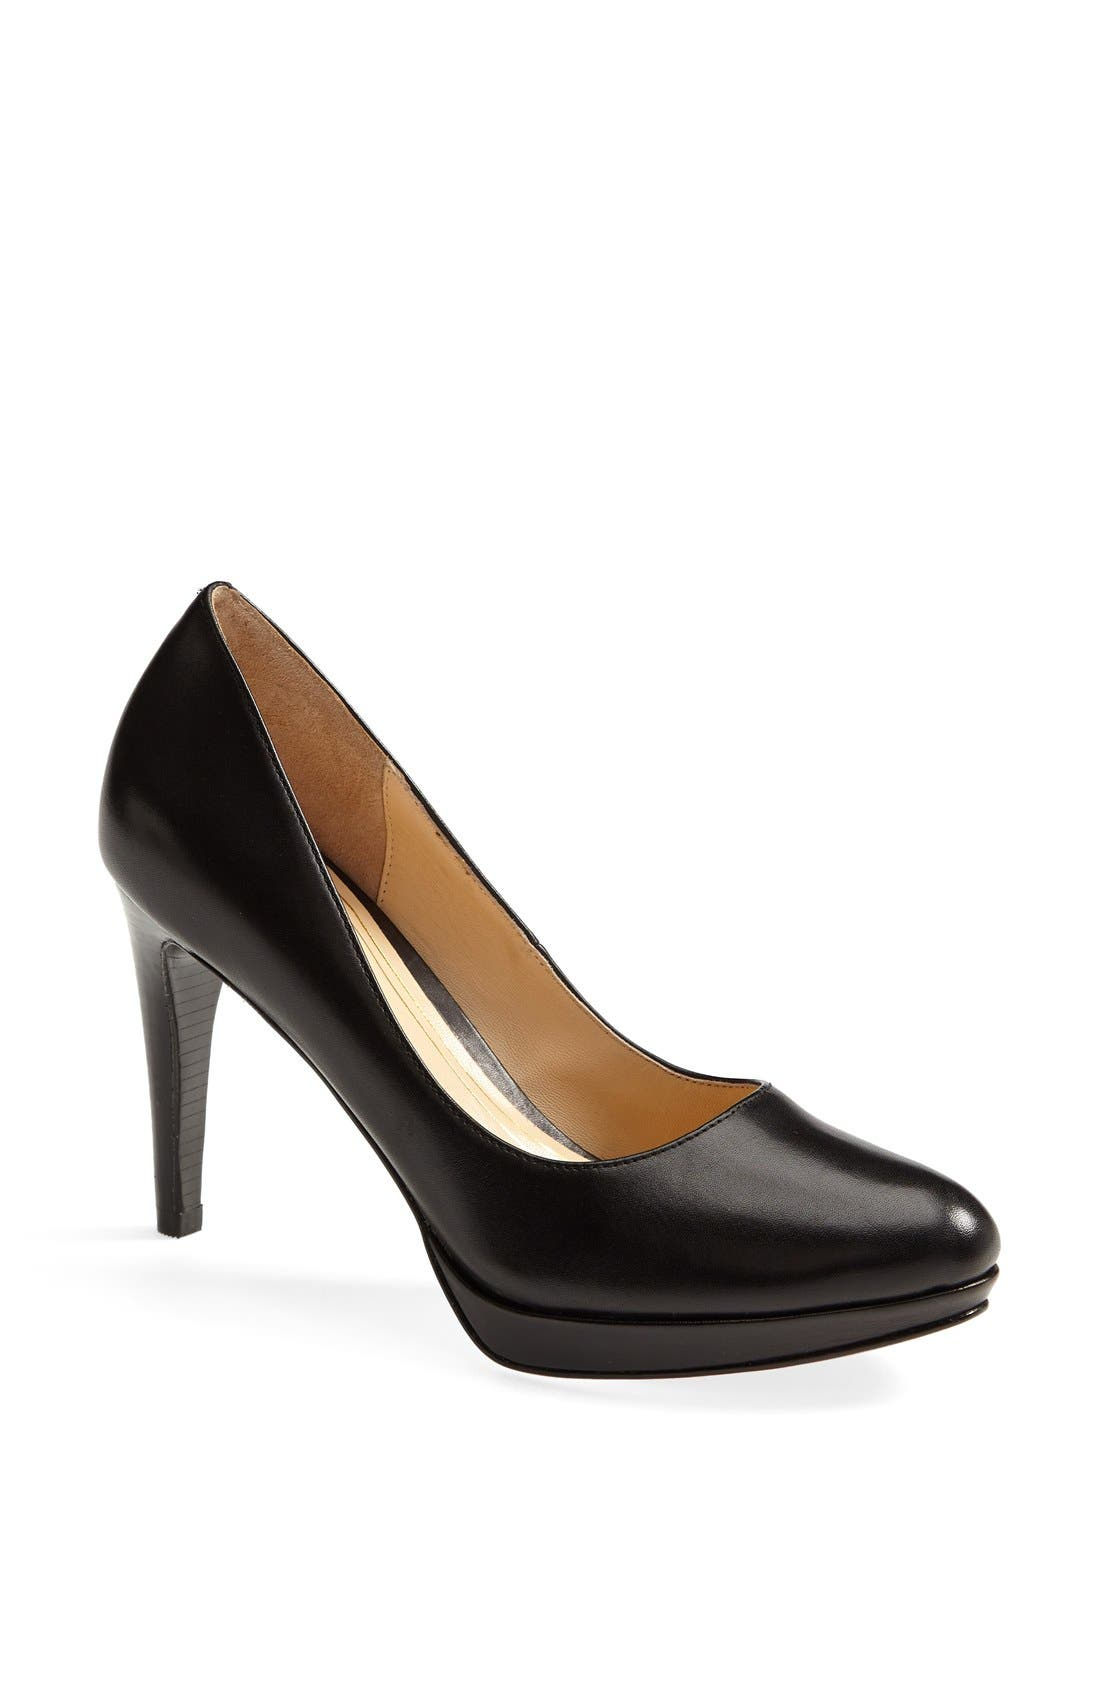 Alternate Image 1 Selected - Cole Haan 'Chelsea' Pump